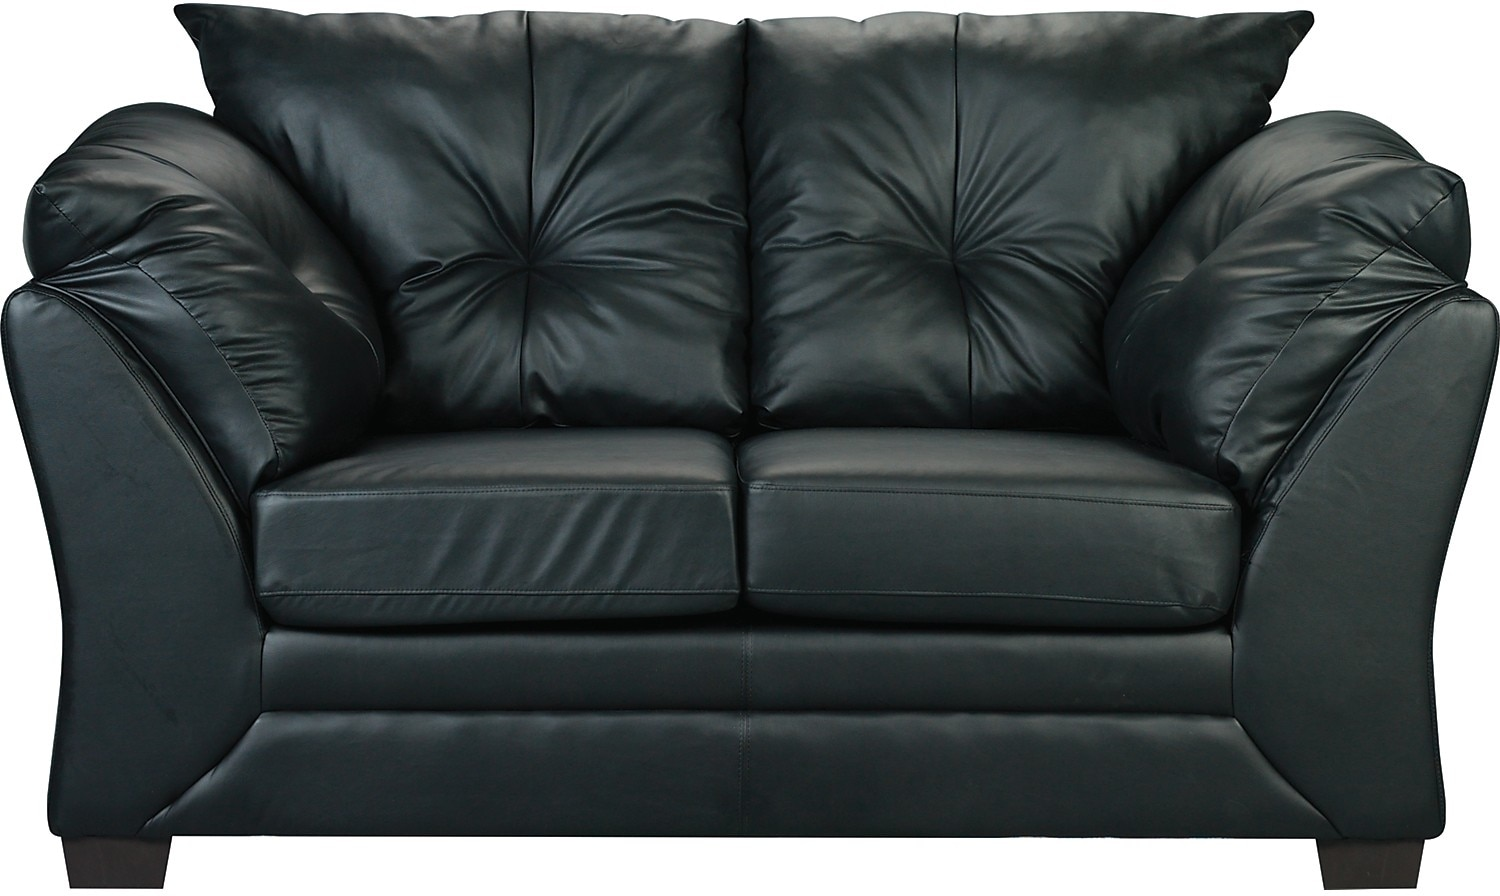 Max Faux Leather Loveseat - Black